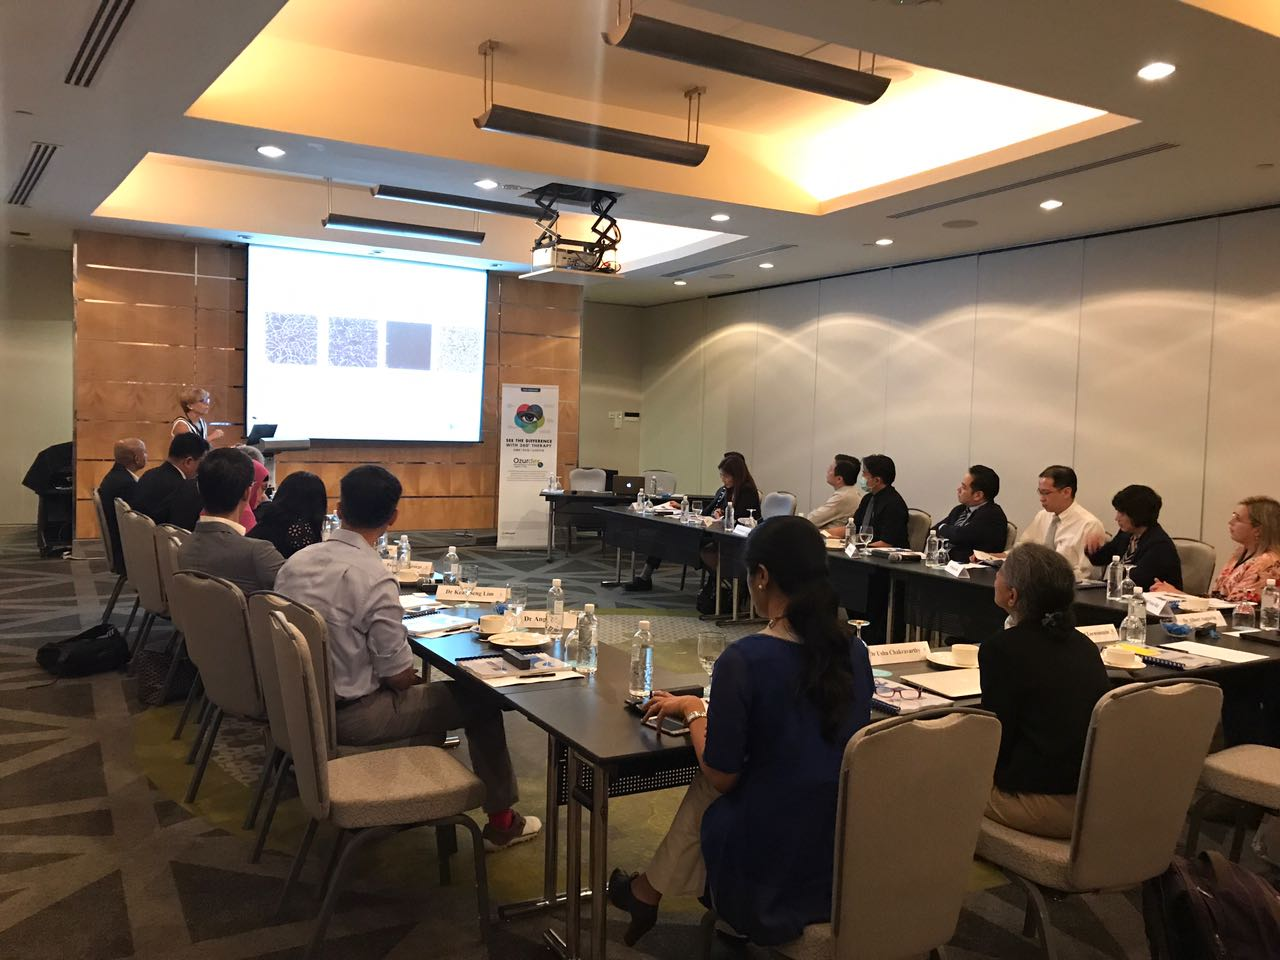 Professor Anat Lowenstein from Israel speaking to participants at the ARIA IV Experts Meeting at the Pan Pacific on 9 June 2017 in Singapore.